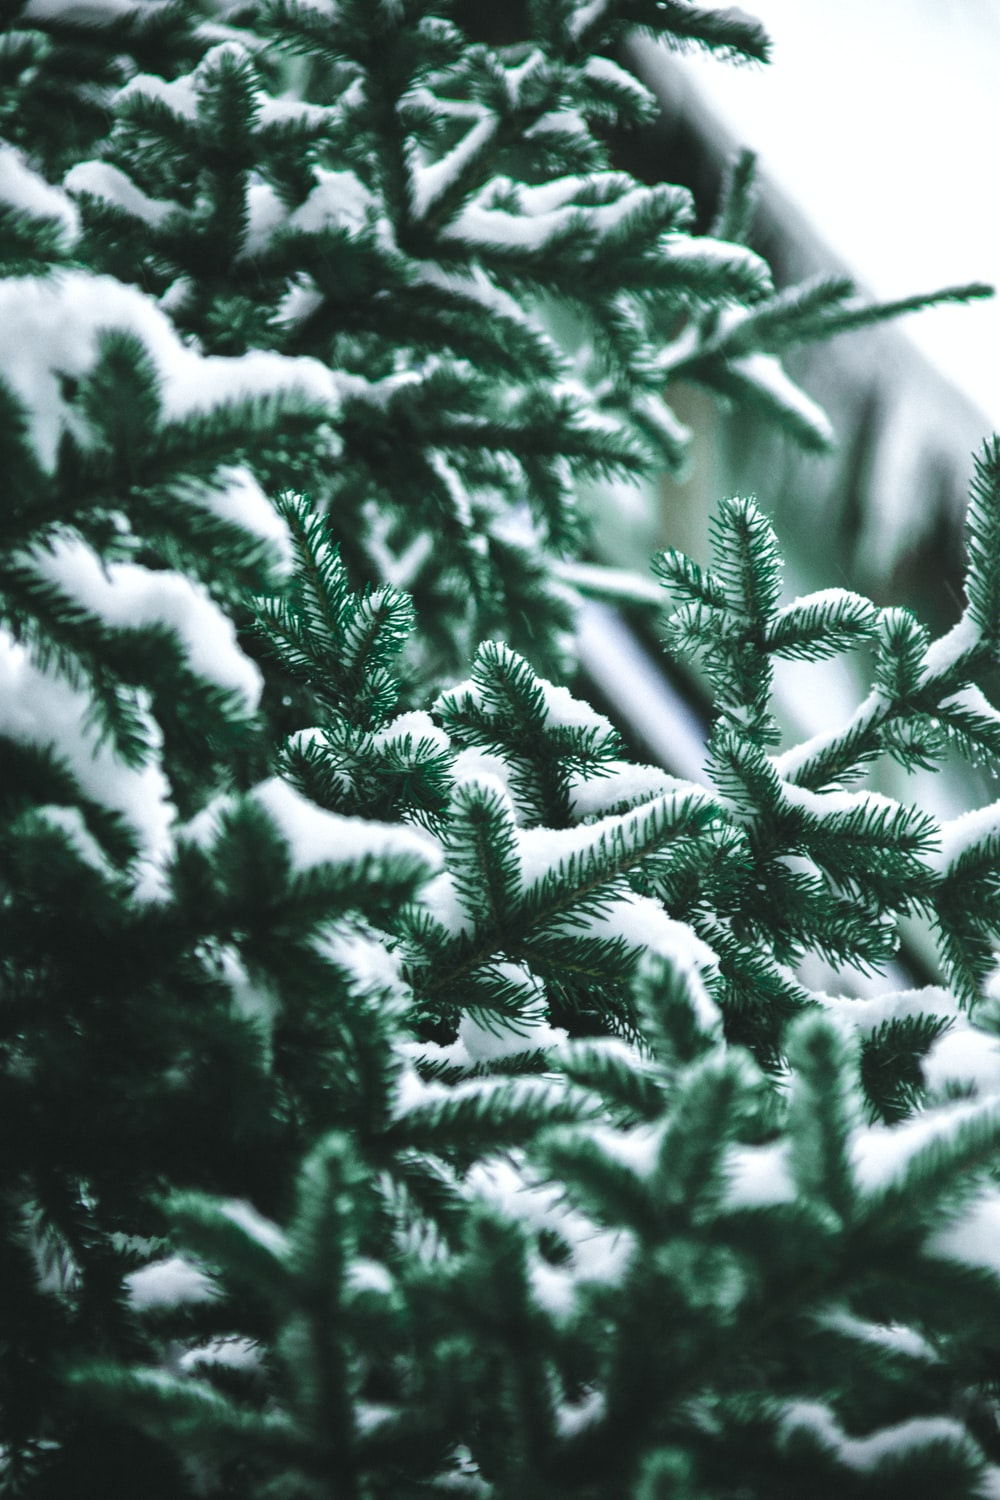 close-up photography of snow covered green pine trees